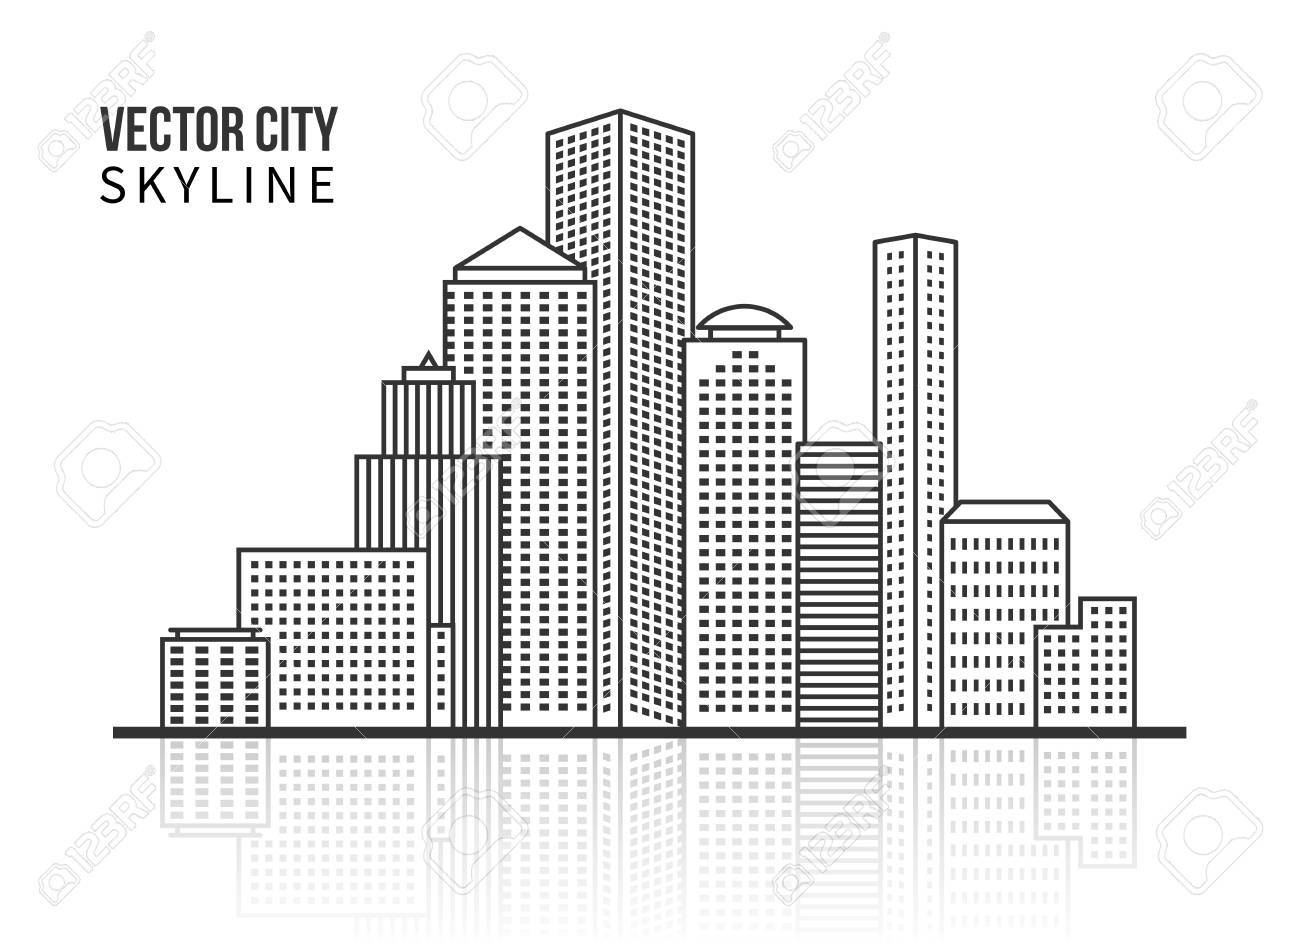 City skyline silhouette in line style - 37844659